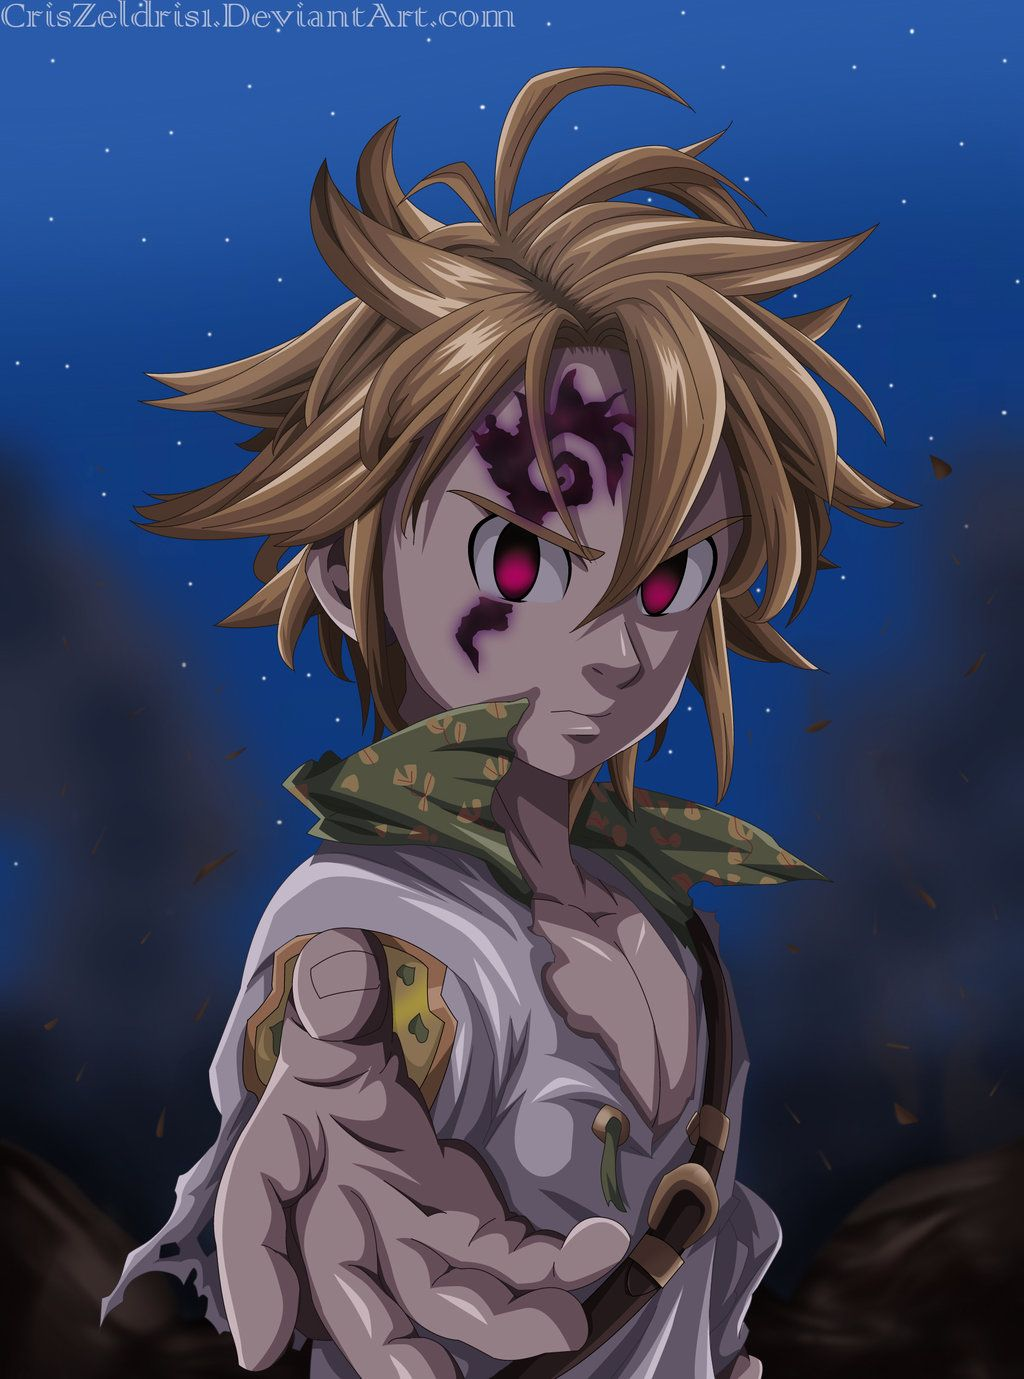 Free download Meliodas Nanatsu no Taizai by CrisZeldris1